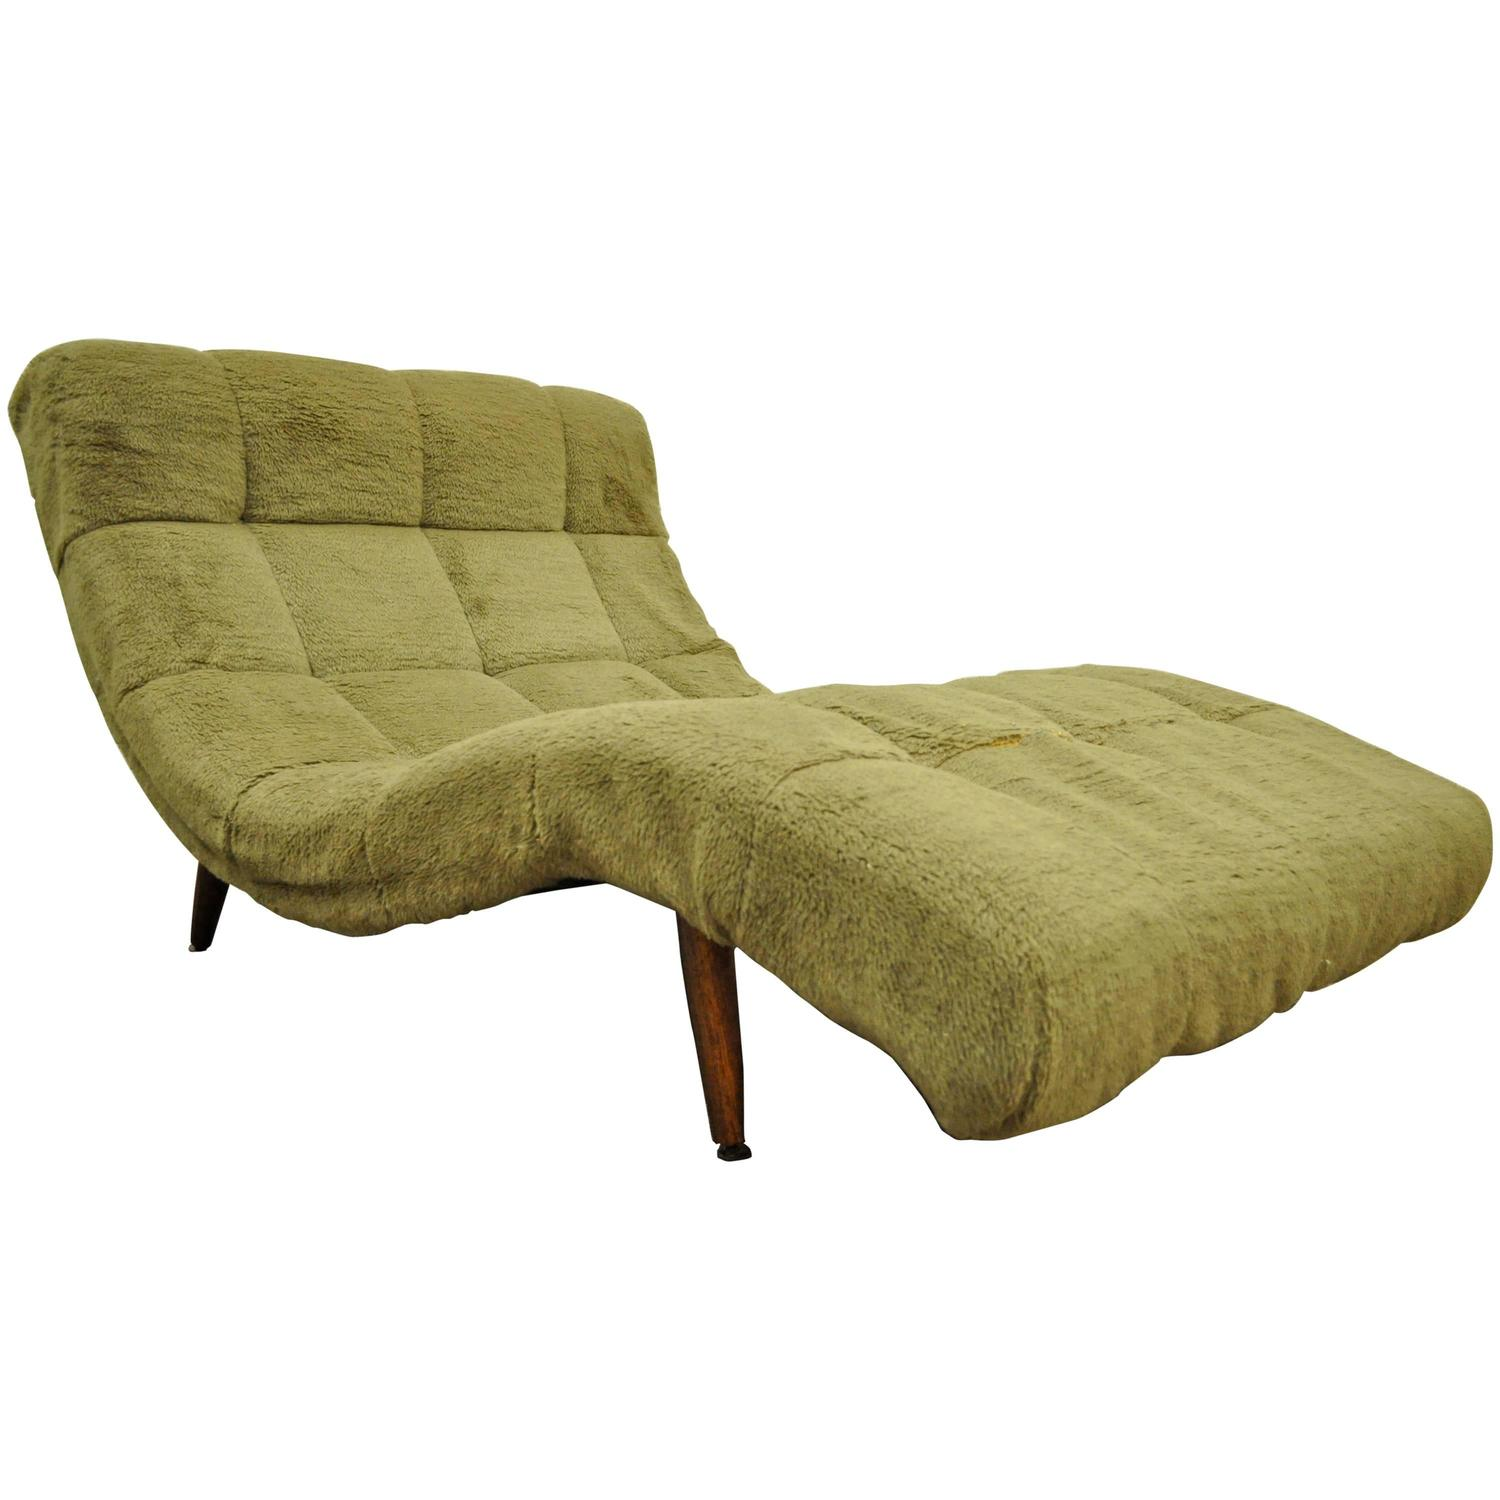 Midcentury modern double wide wave chaise lounge in the for Century furniture chaise lounge